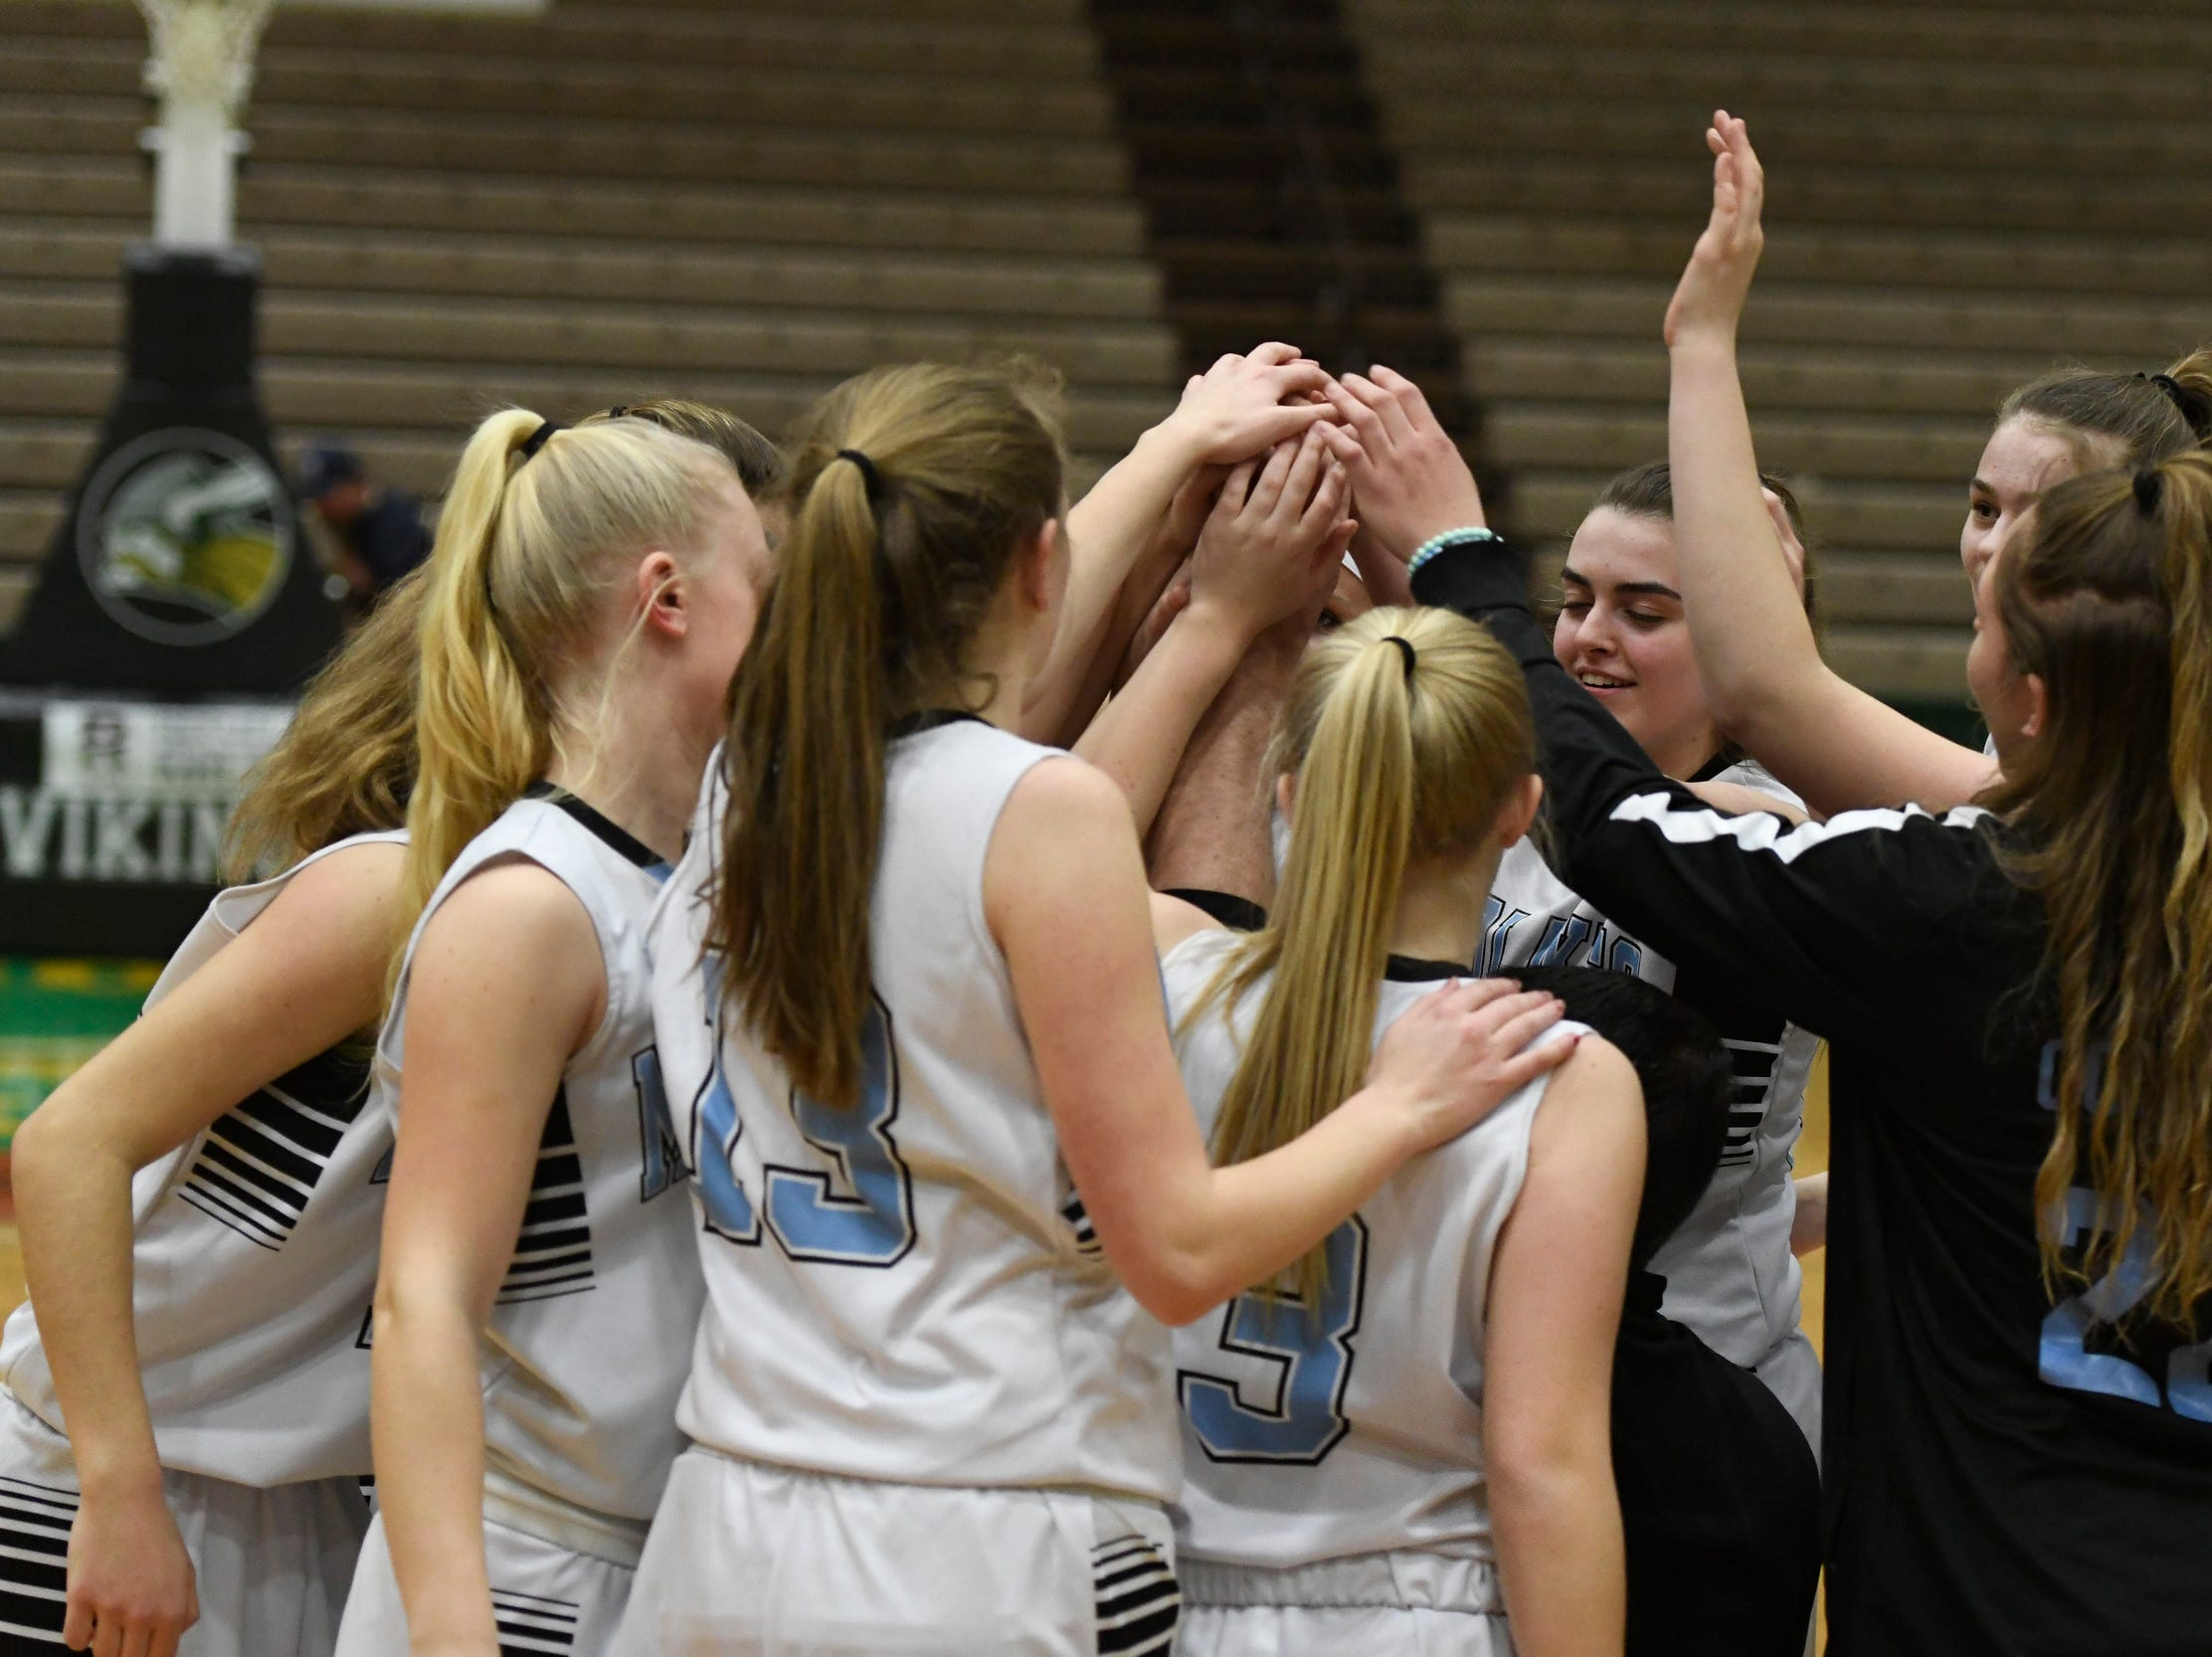 Midlakes girls basketball players rally prior to the start of their Class B State Semifinal against Canton at Hudson Valley Community College in Troy, N.Y. on Friday, Mar. 15, 2019.